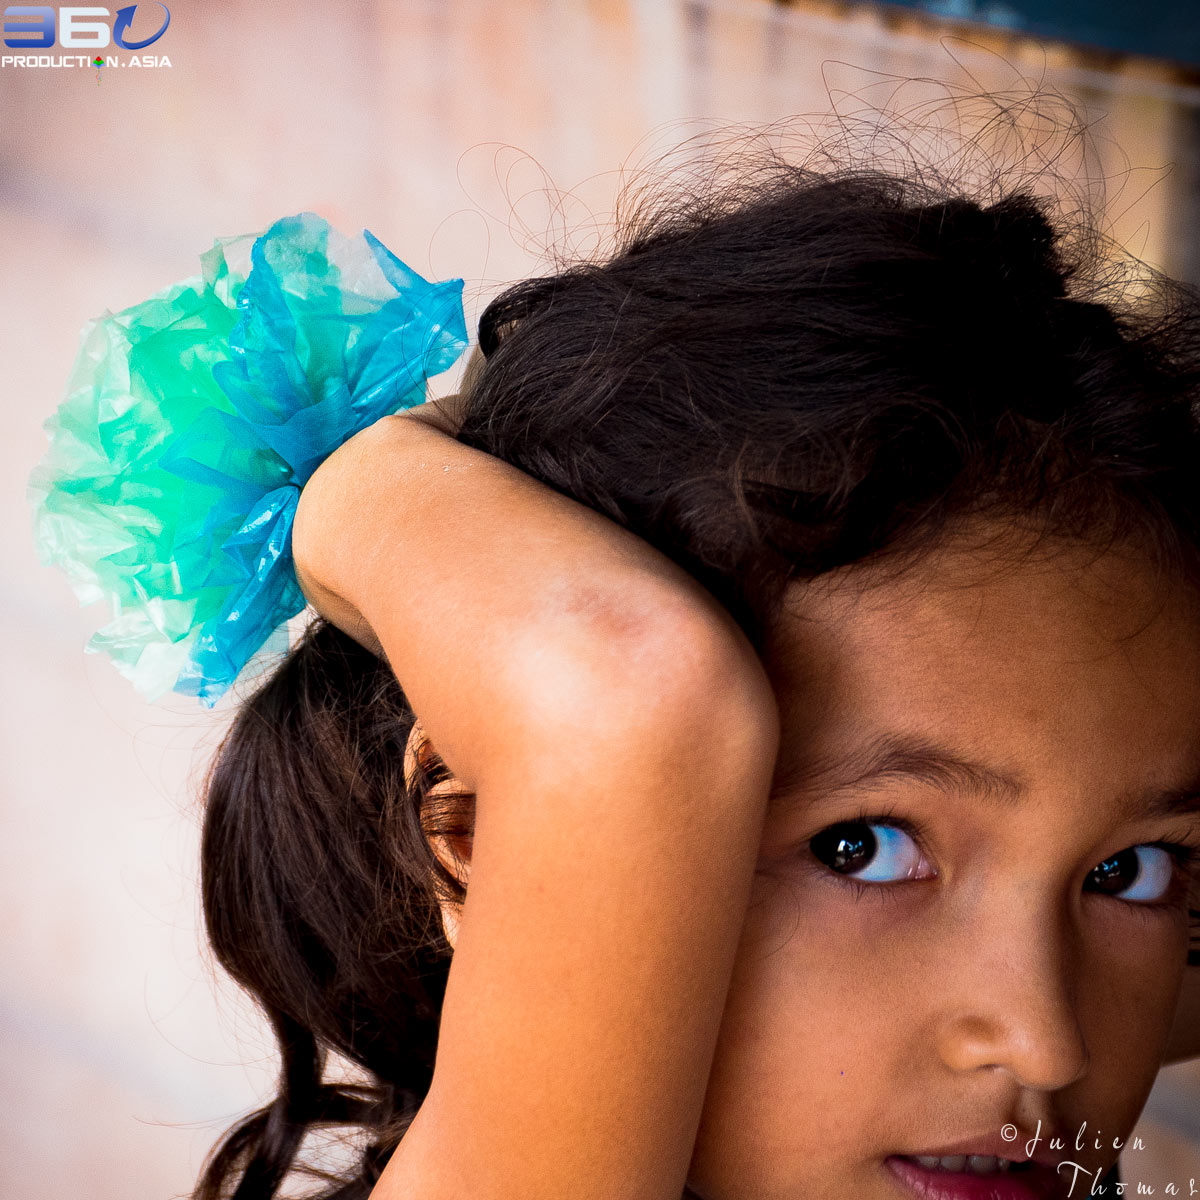 Young girl is tying a flower crafted from recycled plastic waste in her hair during a creative and upcycled course in GoodWill Center - Sihanoukville, Cambodia